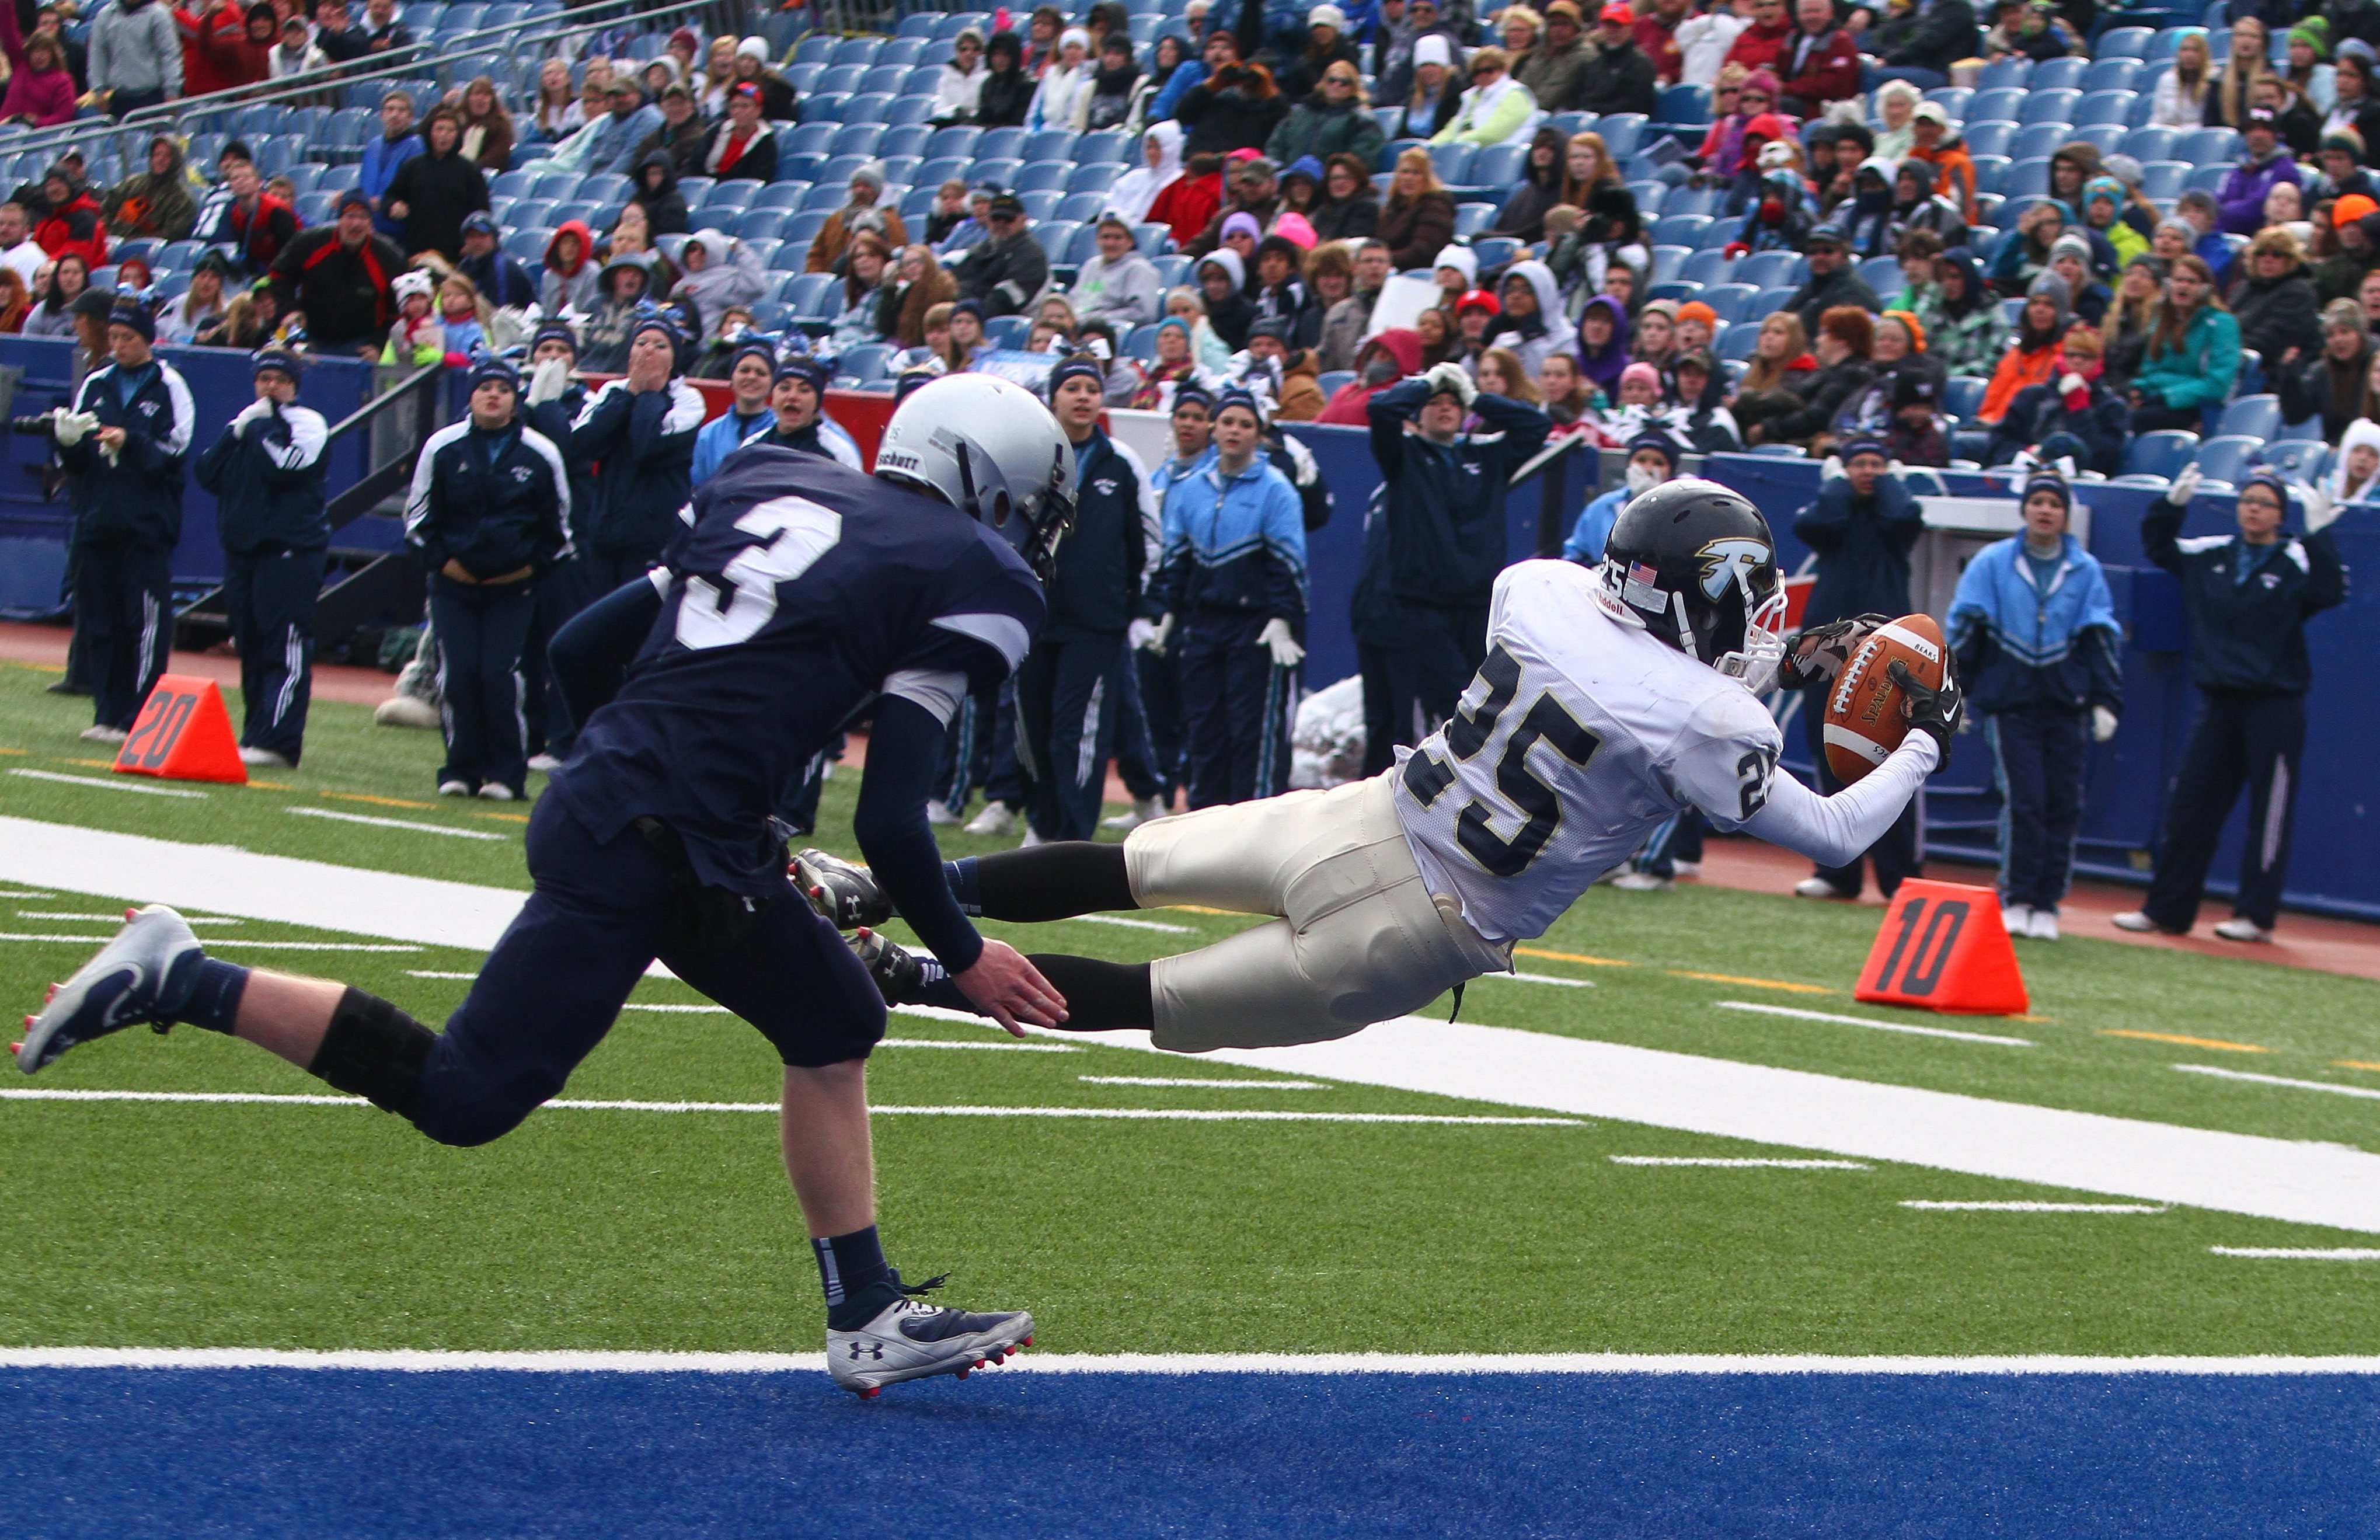 Frewsburg's Jordan Ingerson (25) dives in for a touchdown ahead of Cattaraugus/Little Valley's Kyle O'Donnell (3).